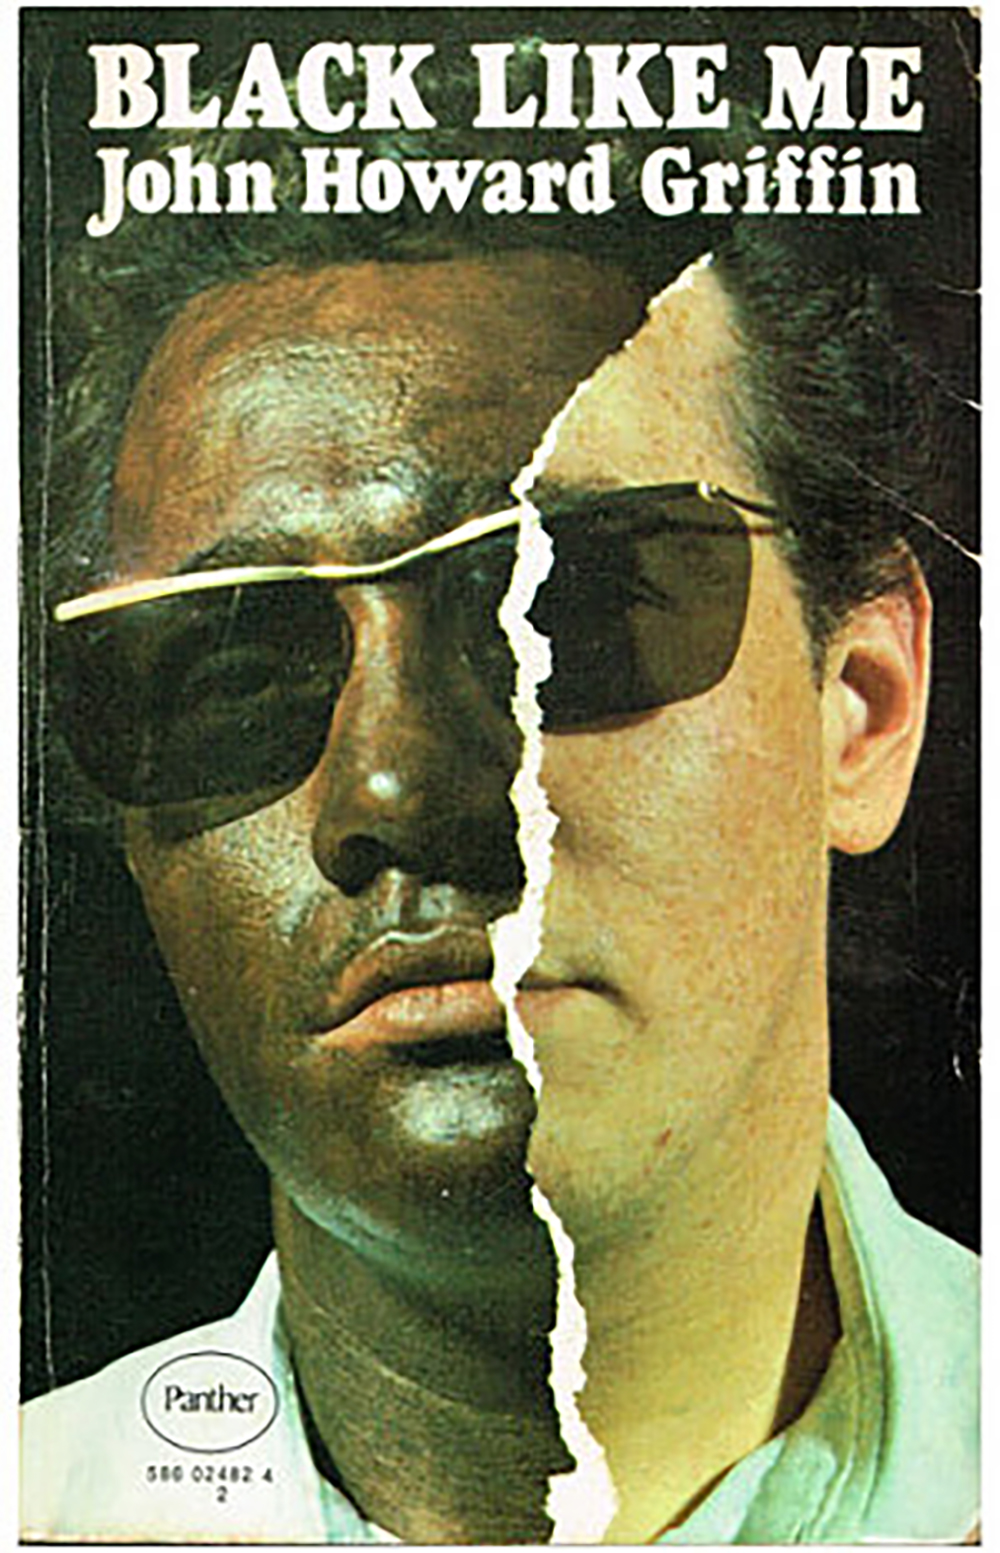 an analysis of the book black like me by john howard griffin Free download or read online black like me pdf (epub) book the first edition of this novel was published in january 1st 1960, and was written by john howard griffin.